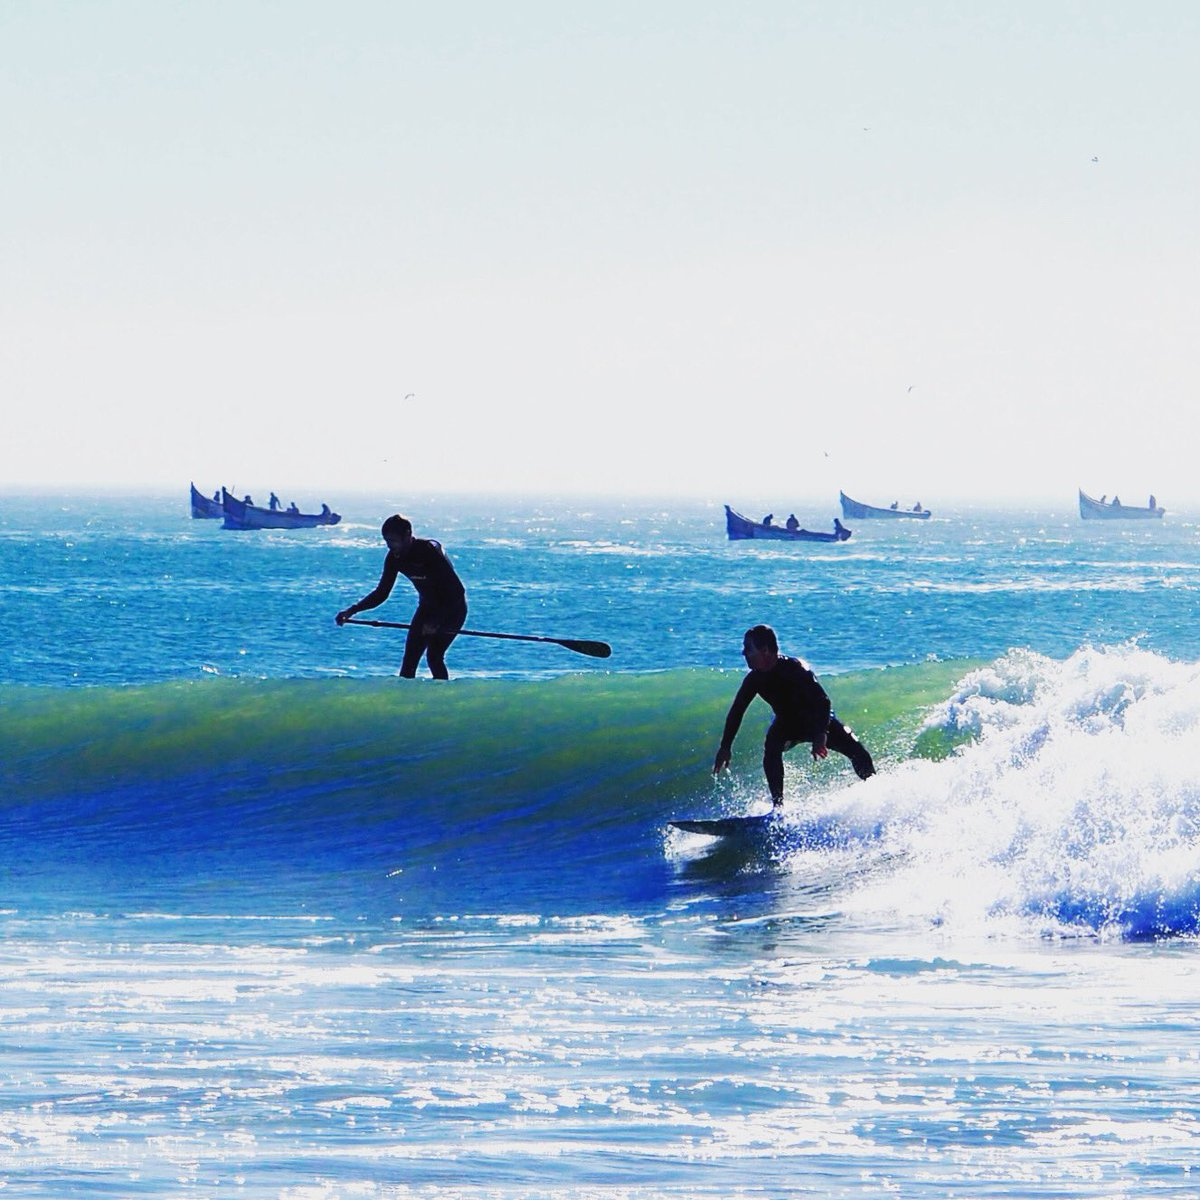 Because there is nothing more beautiful than the emotion of the sea.... #lifebythesea #surfing #dakhla #paddle #fishing #fishingboat  #naturelovers #waves #vacation #surf #landscape #oceanlover #oceans #oceanview #oceanart #nature #beach #seascape #sea #sun #water #travelpic.twitter.com/nGjeV7TYcD